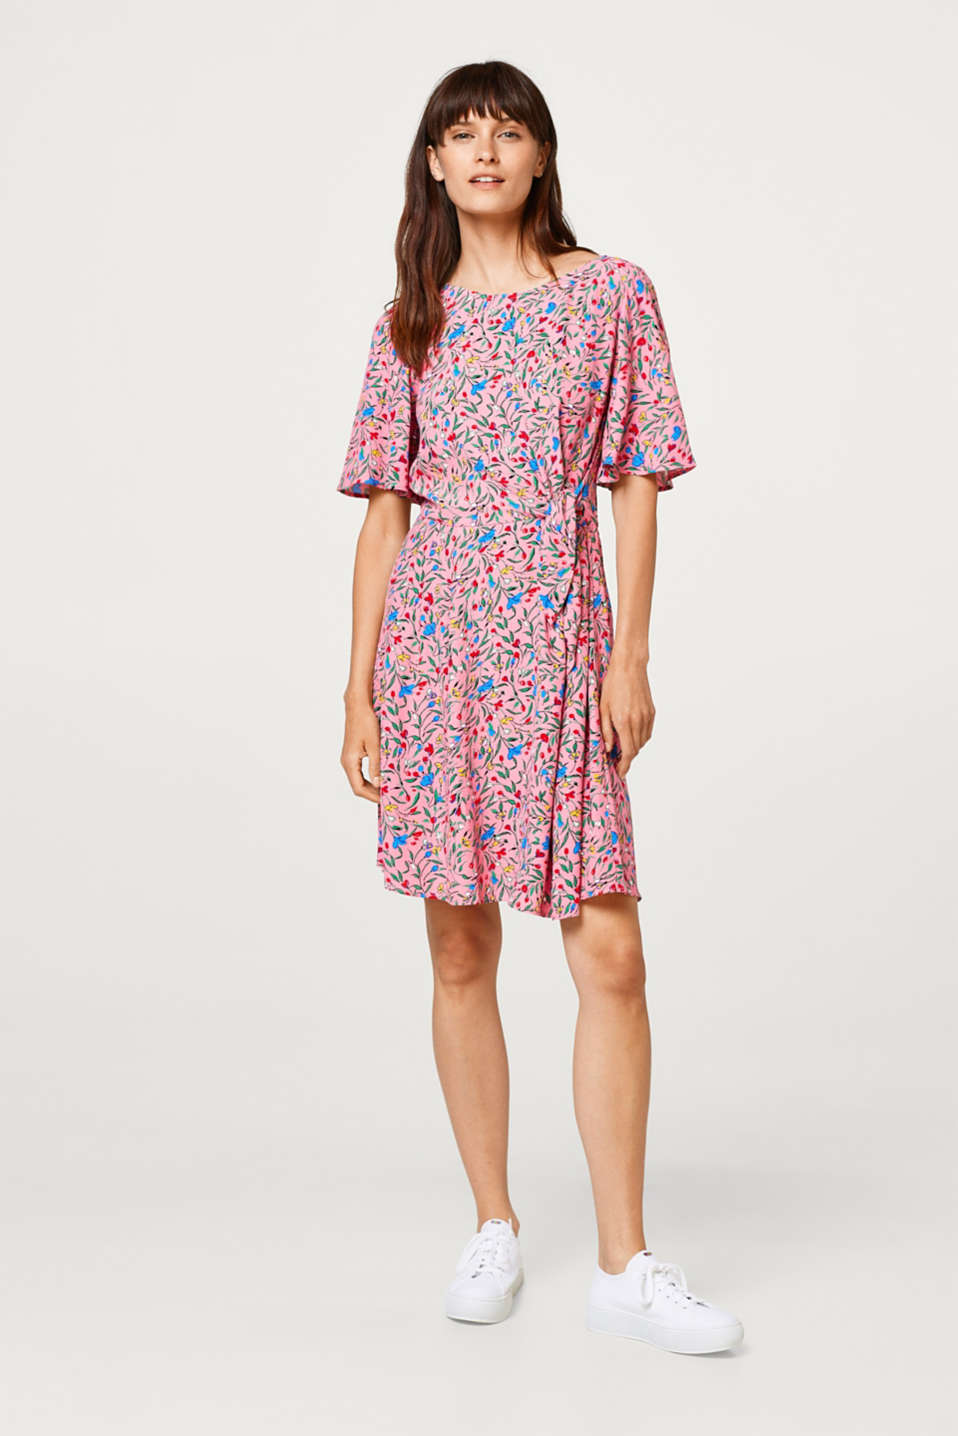 Print dress with knot details and cap sleeves